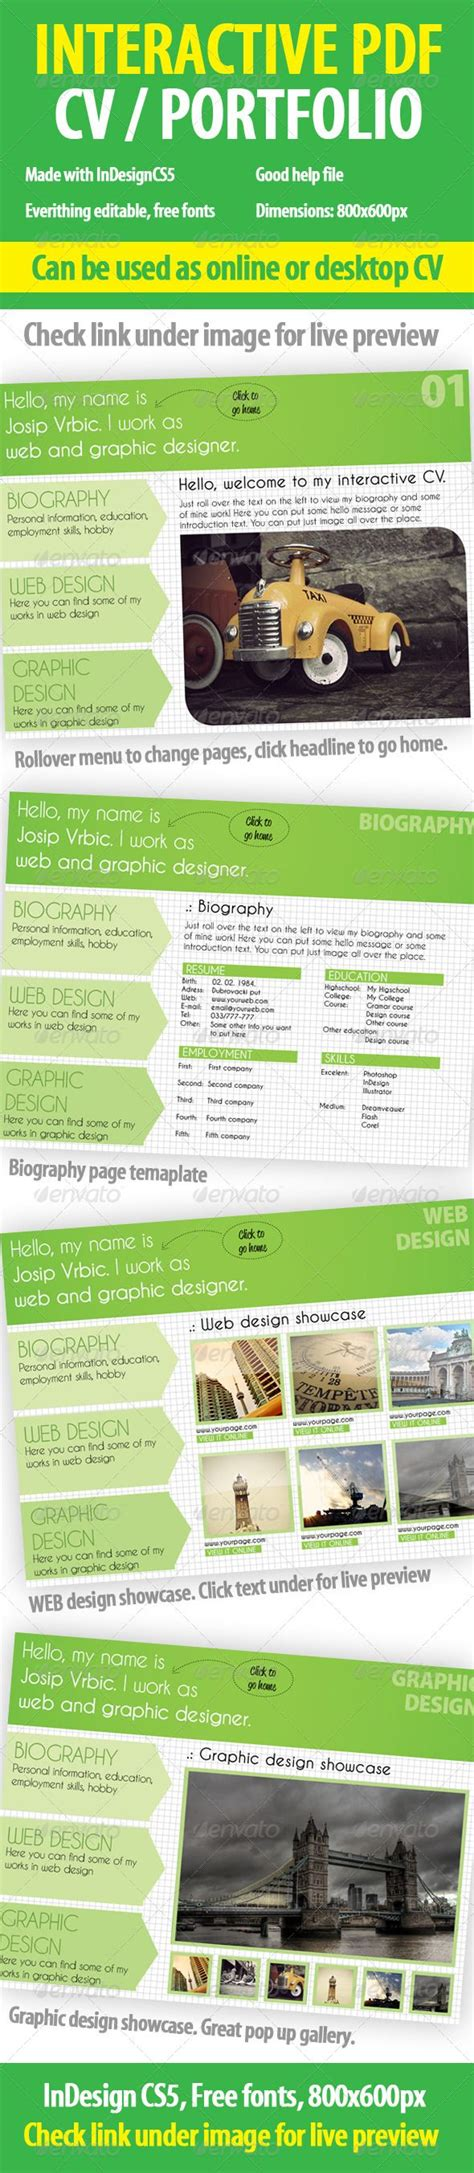 Interactive Cv Portfolio Pdf Indesign Template Portfolio Pdf Indesign Templates And Template Interactive Pdf Templates Indesign